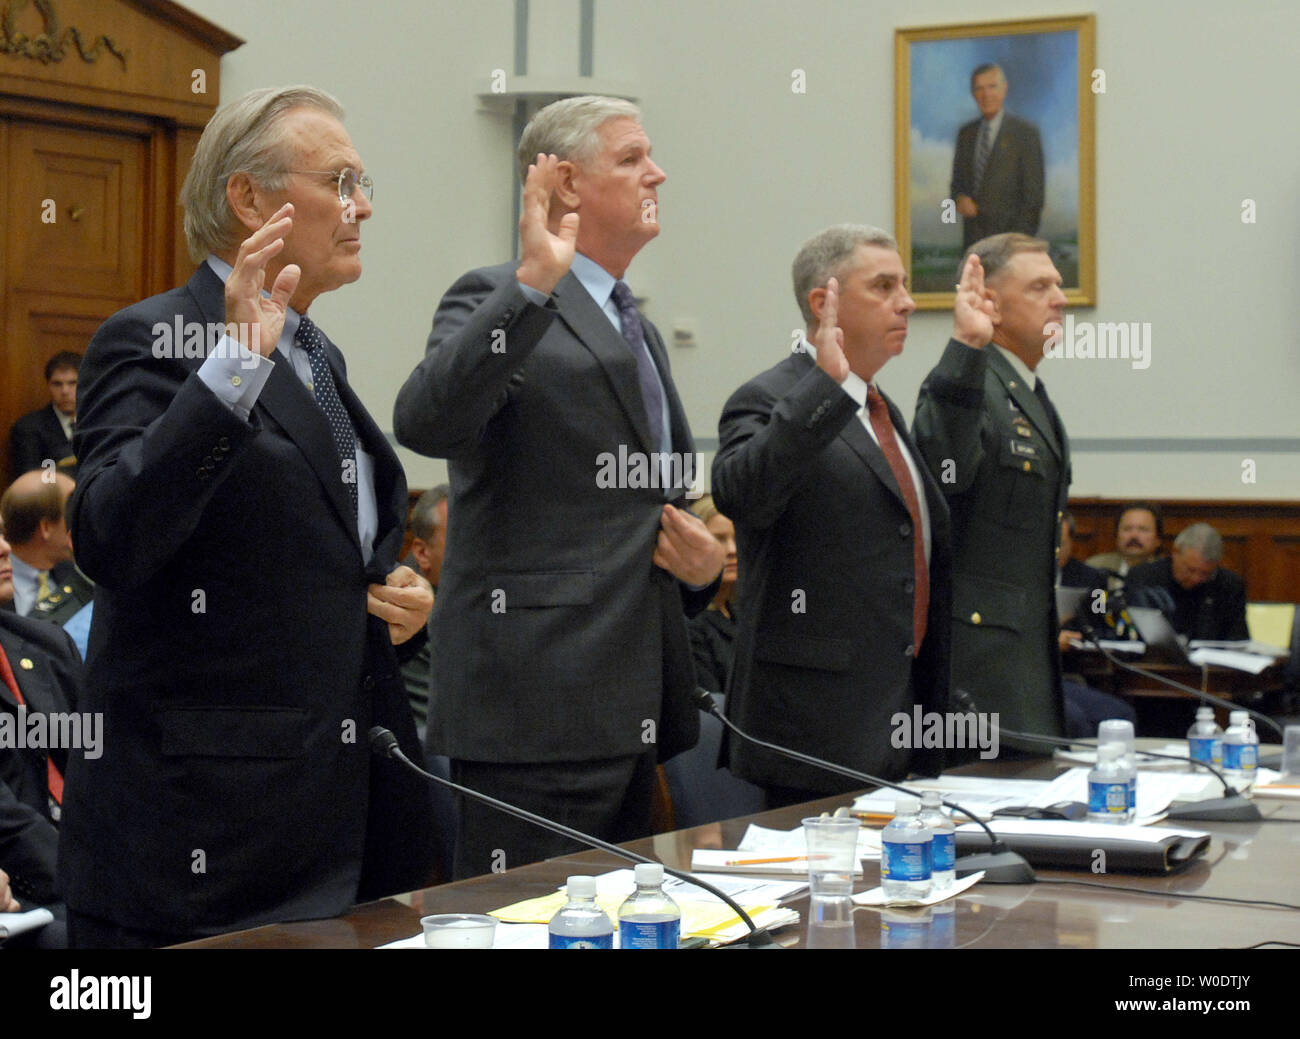 Former Defense Secretary Donald Rumsfeld, former Chairman of the Joint Chiefs of Staff retired Gen. Richard Myers, former commander of the U.S. Central Command retired Gen. John Abizaid and past commander of the U.S. Special Operations Command retired Gen. Bryan Brown (L to R) are sworn in prior to a House Oversight and Government Reform Committee hearing on 'The Tillman Fratricide: What the Leadership of the Defense Department Knew,' on Capitol Hill in Washington on August 1, 2007. Pat Tillman, a former NFL football player, was killed on April 22, 2004 in a 'friendly fire' incident while serv - Stock Image